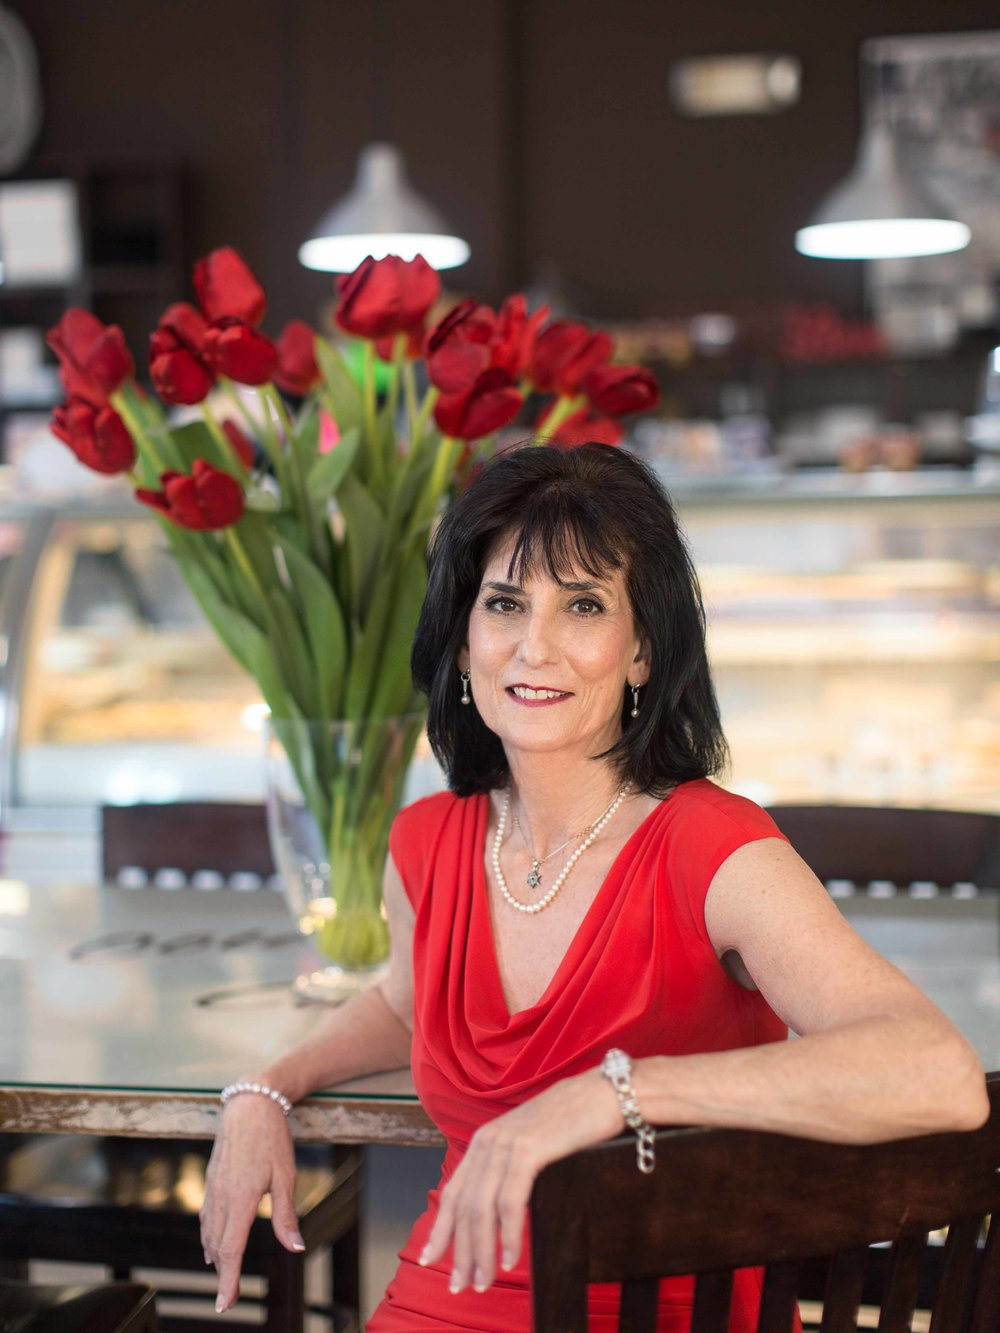 personal-branding-photography-realtor-red-dress-red-tulips-french-cafe-boca-raton-south-florida